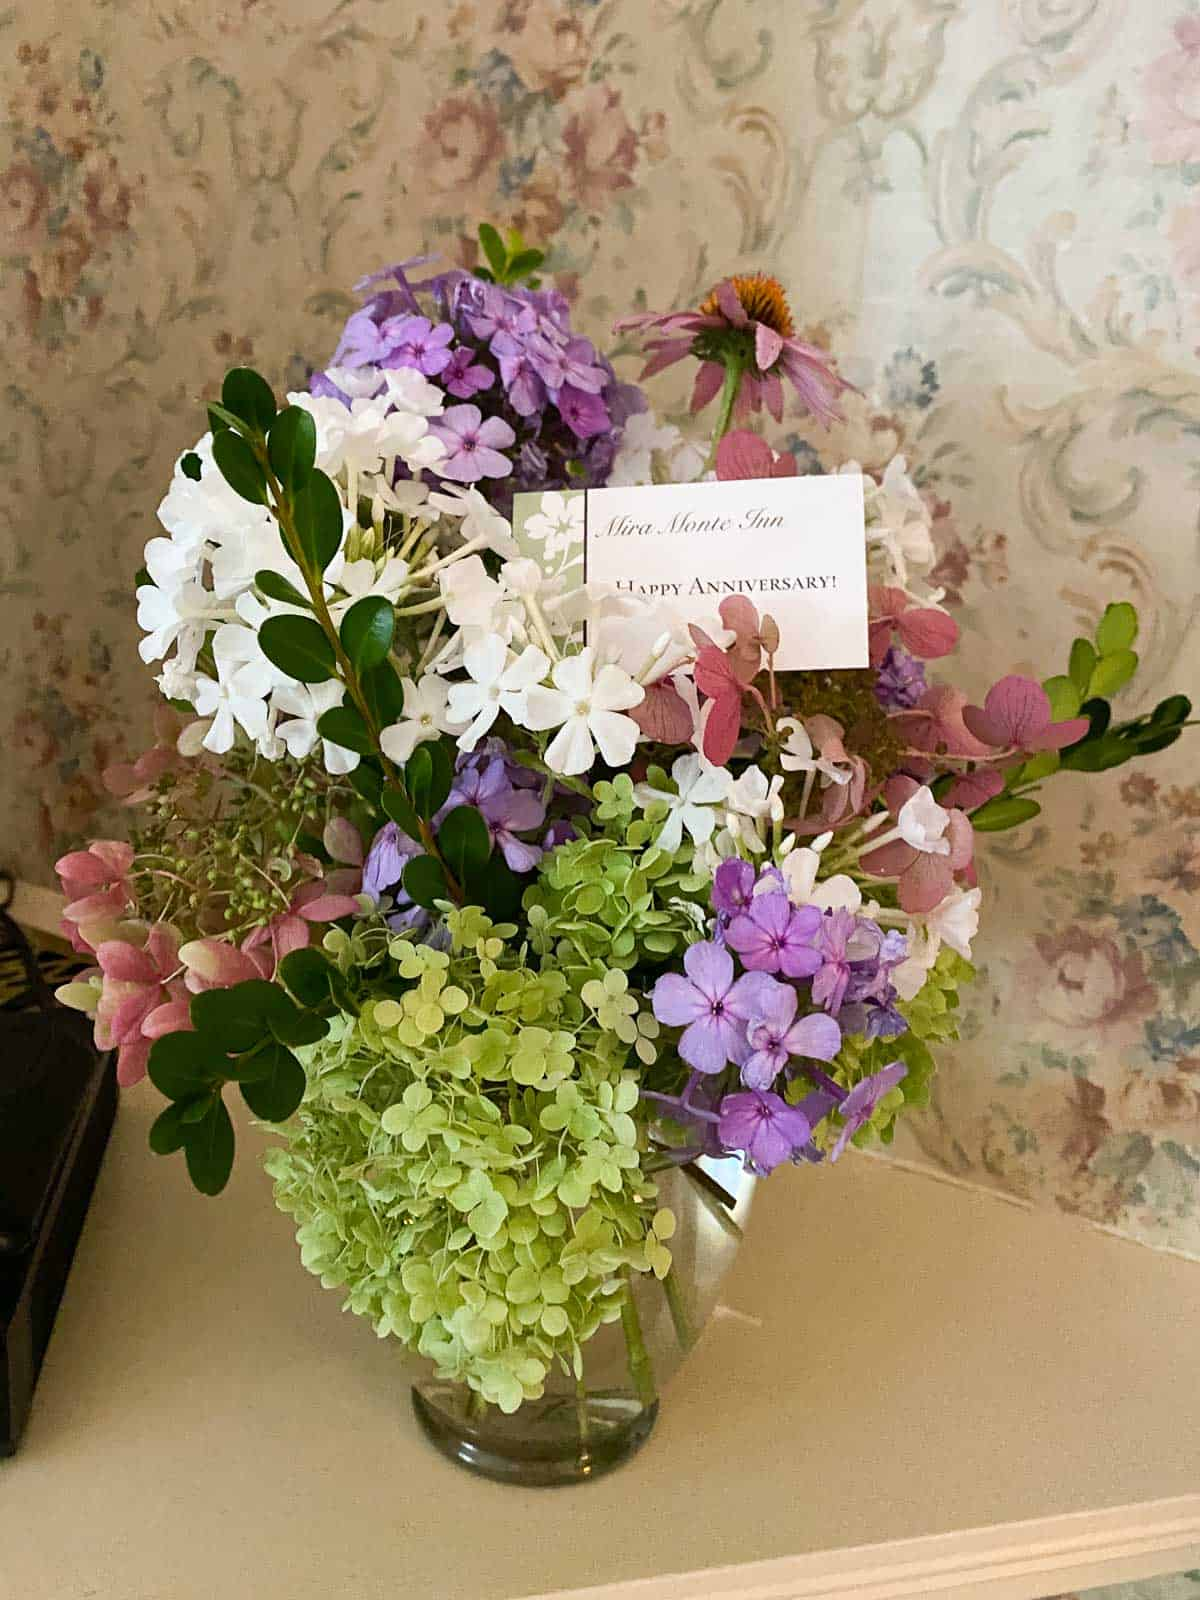 fresh flowers in a glass vase with a Happy Anniversary card